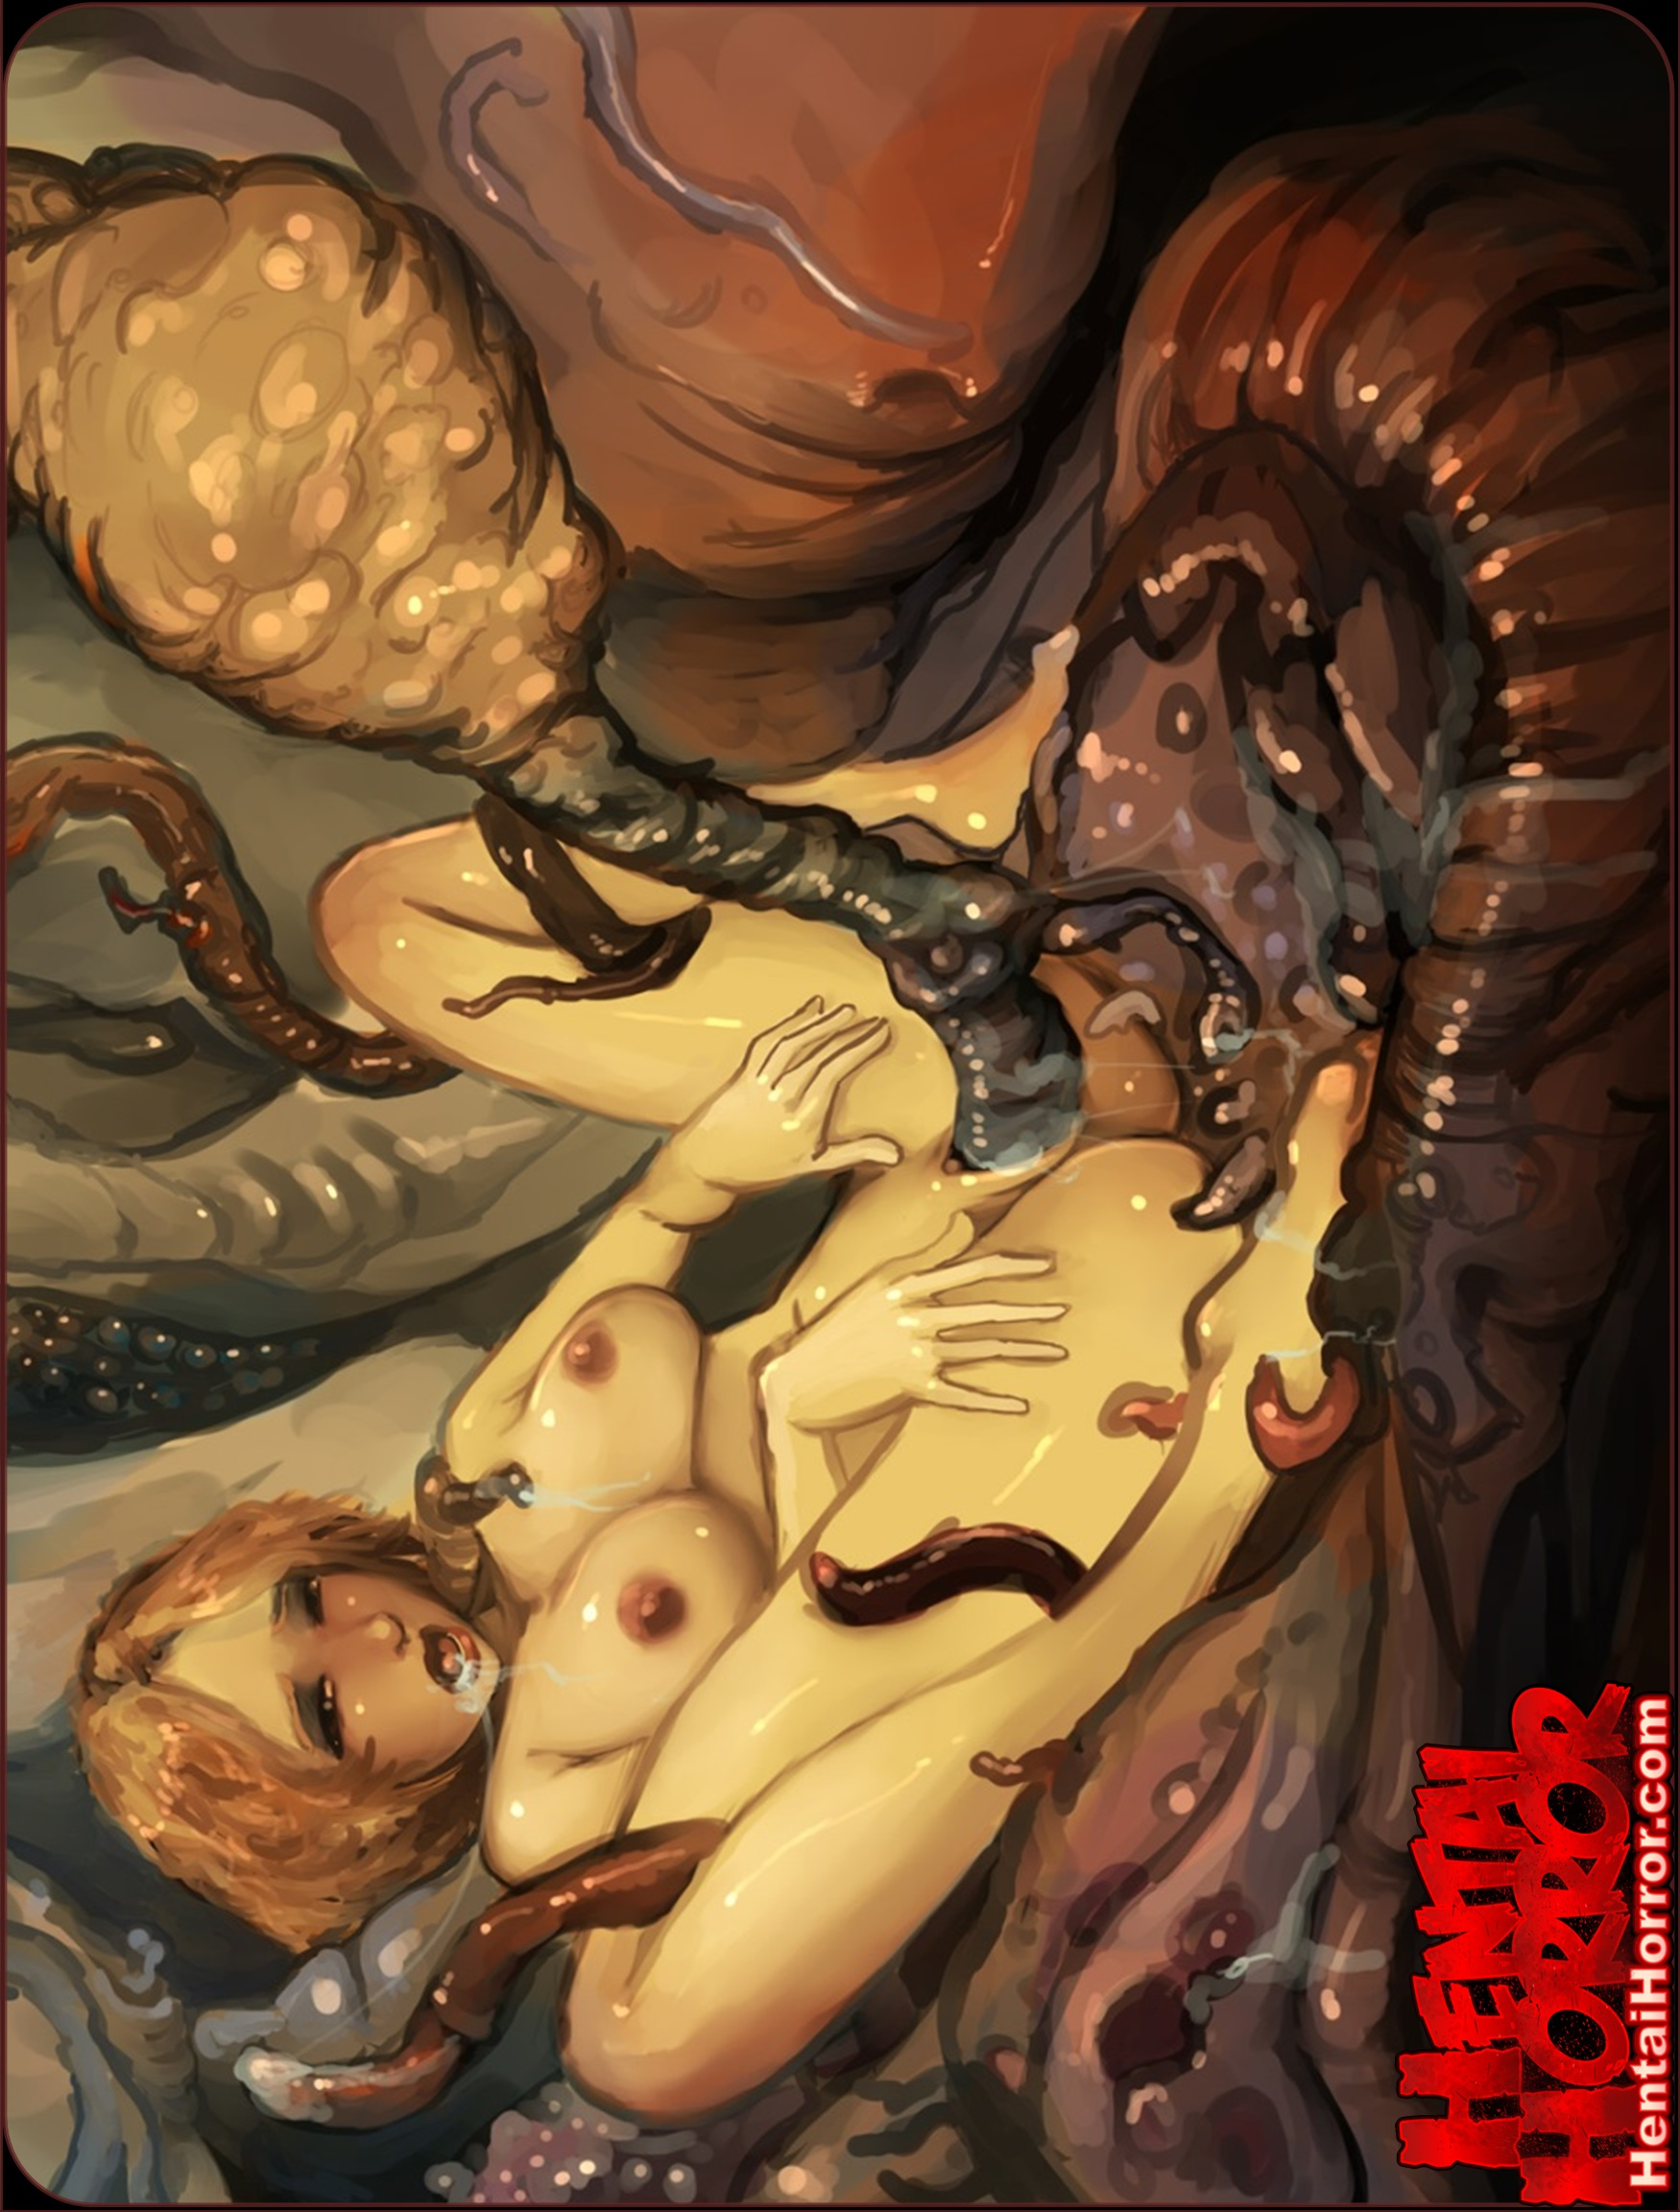 oppai monsterhentai bigtits chinranegglaying porn